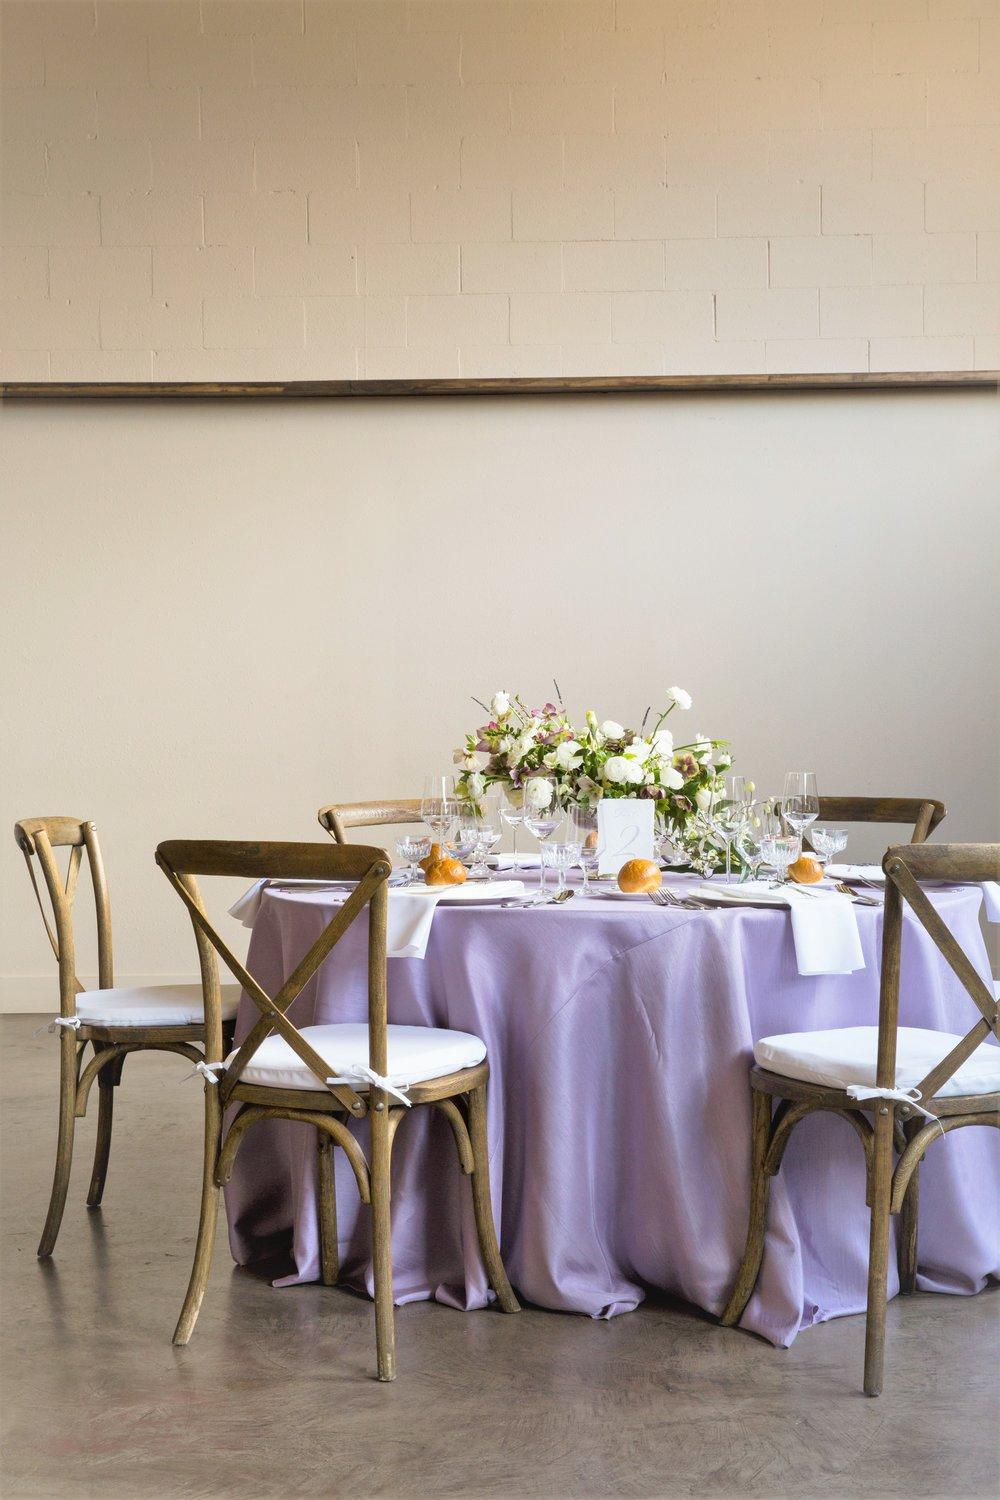 lavender table cloth.jpg